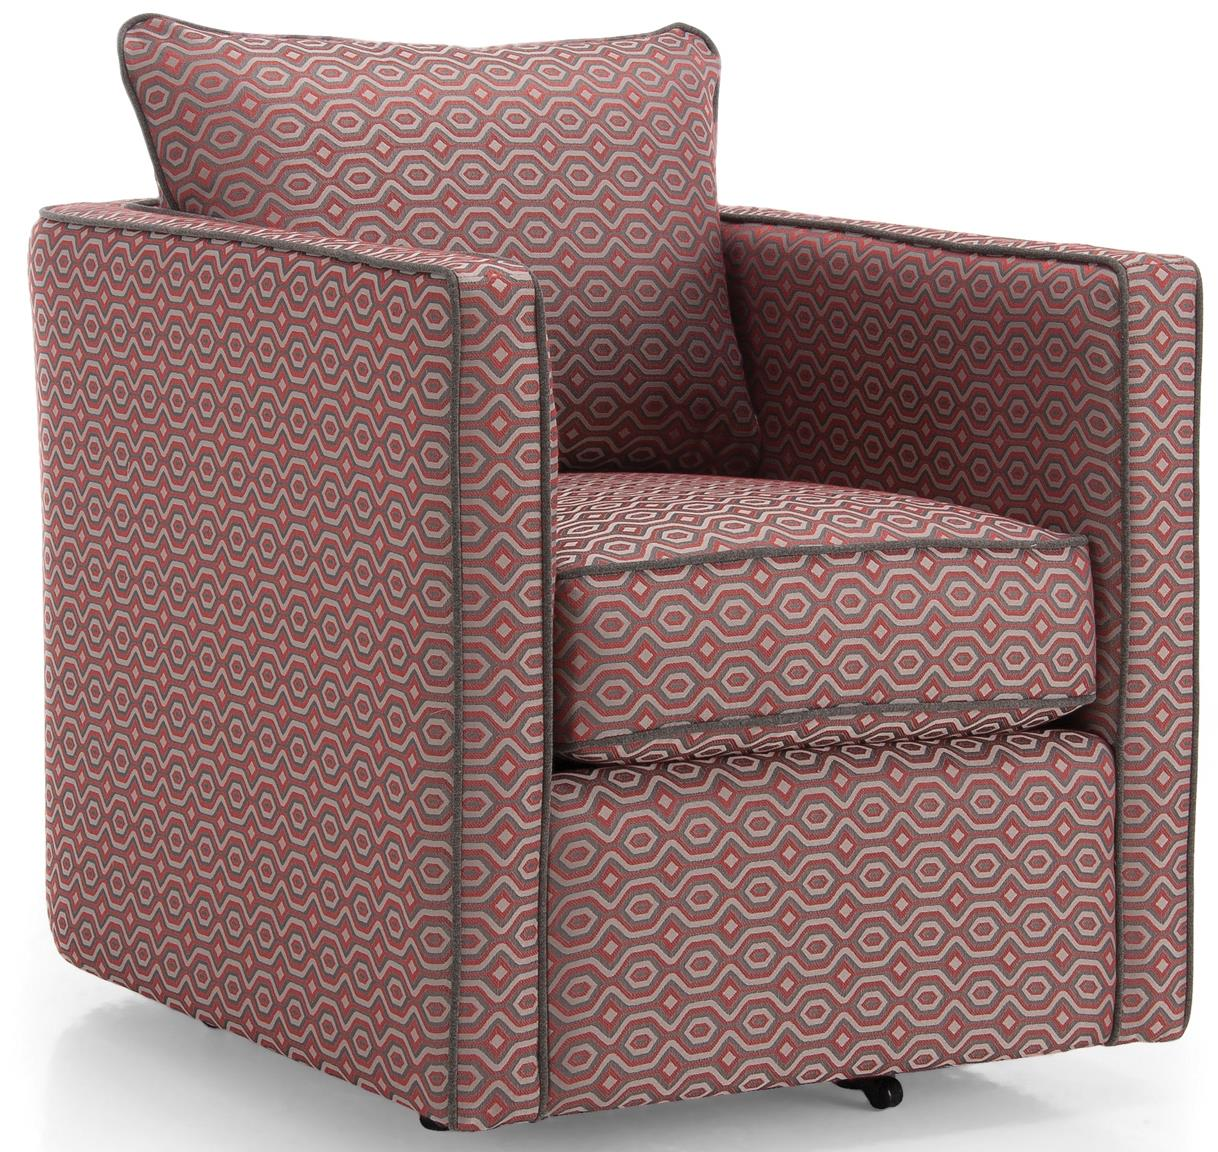 2050 Swivel Chair by Decor-Rest at Rooms for Less